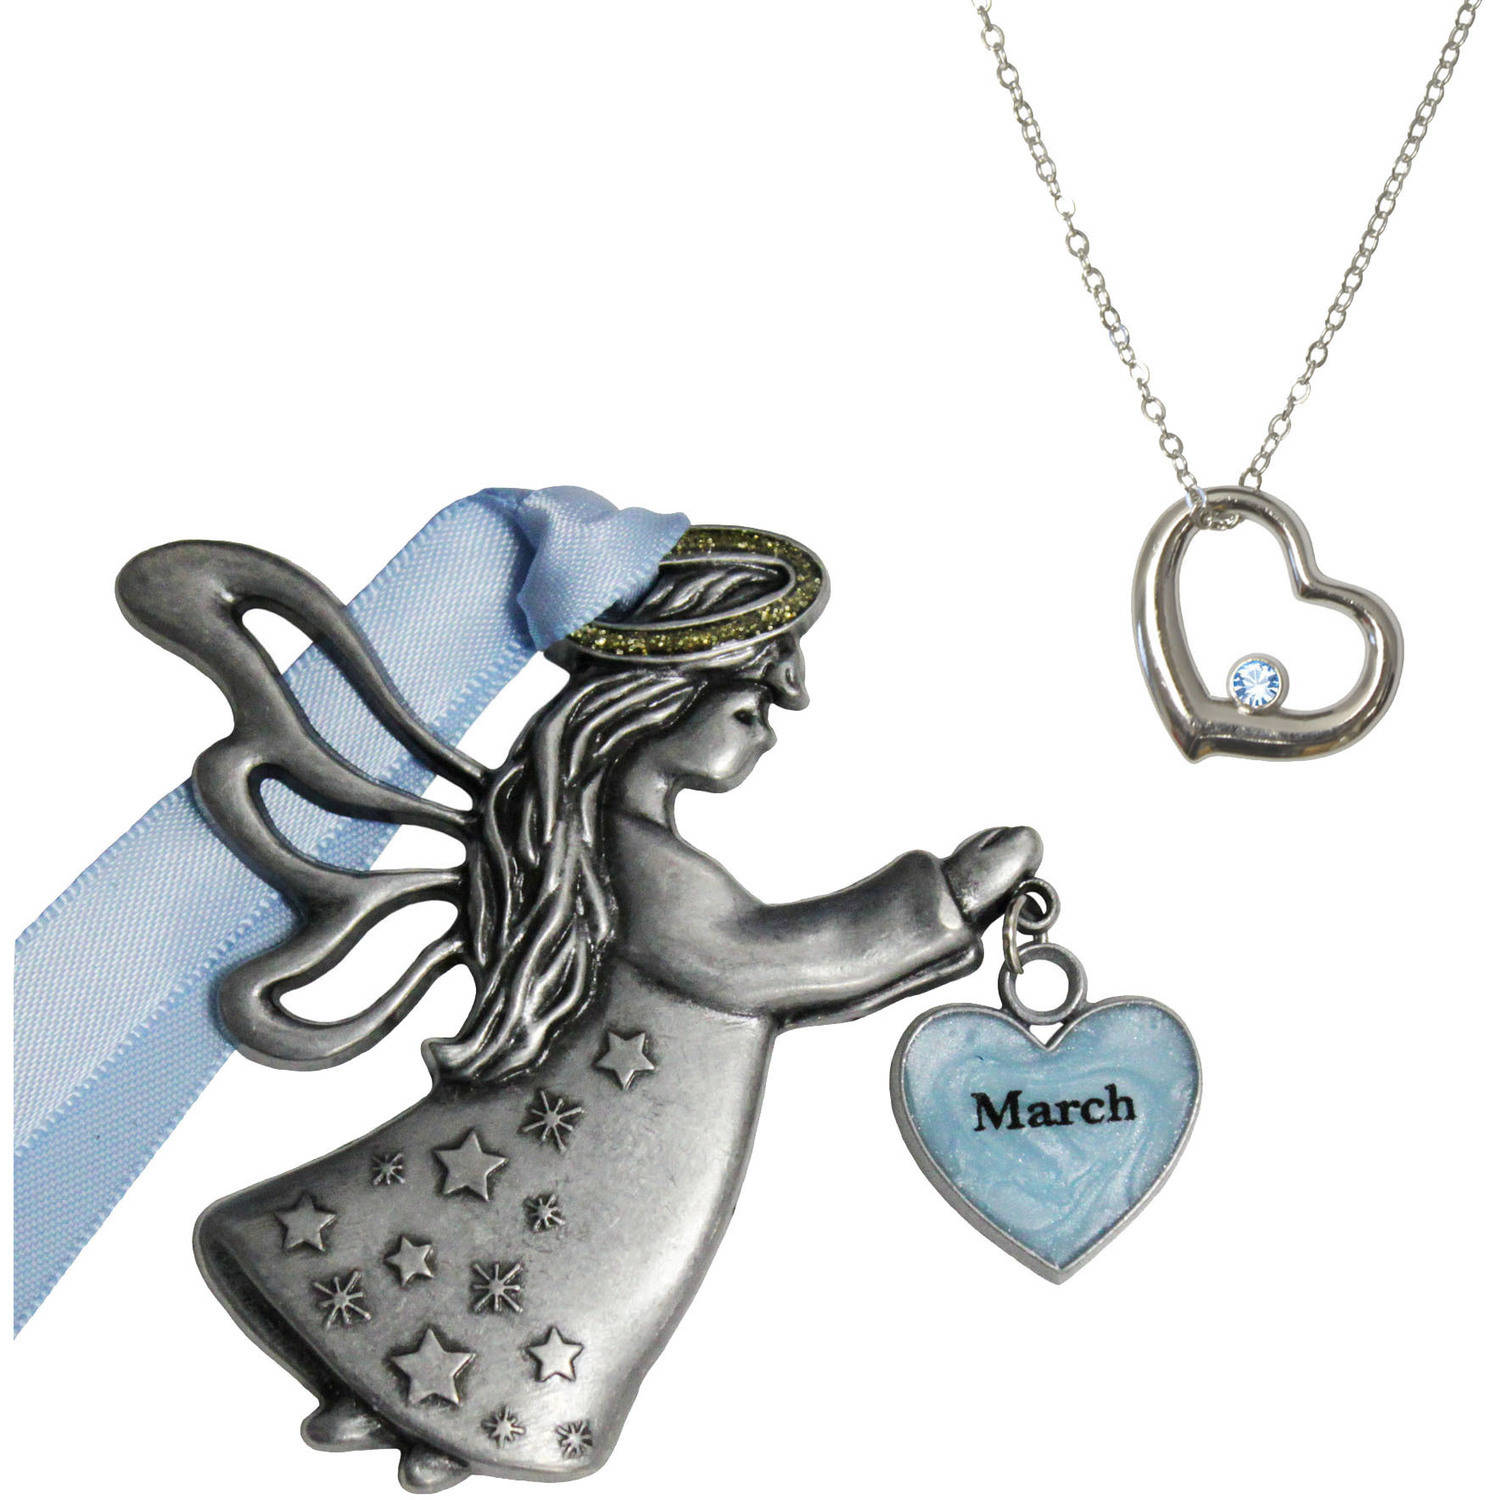 March Birthstone Angel Ornament and Necklace Set